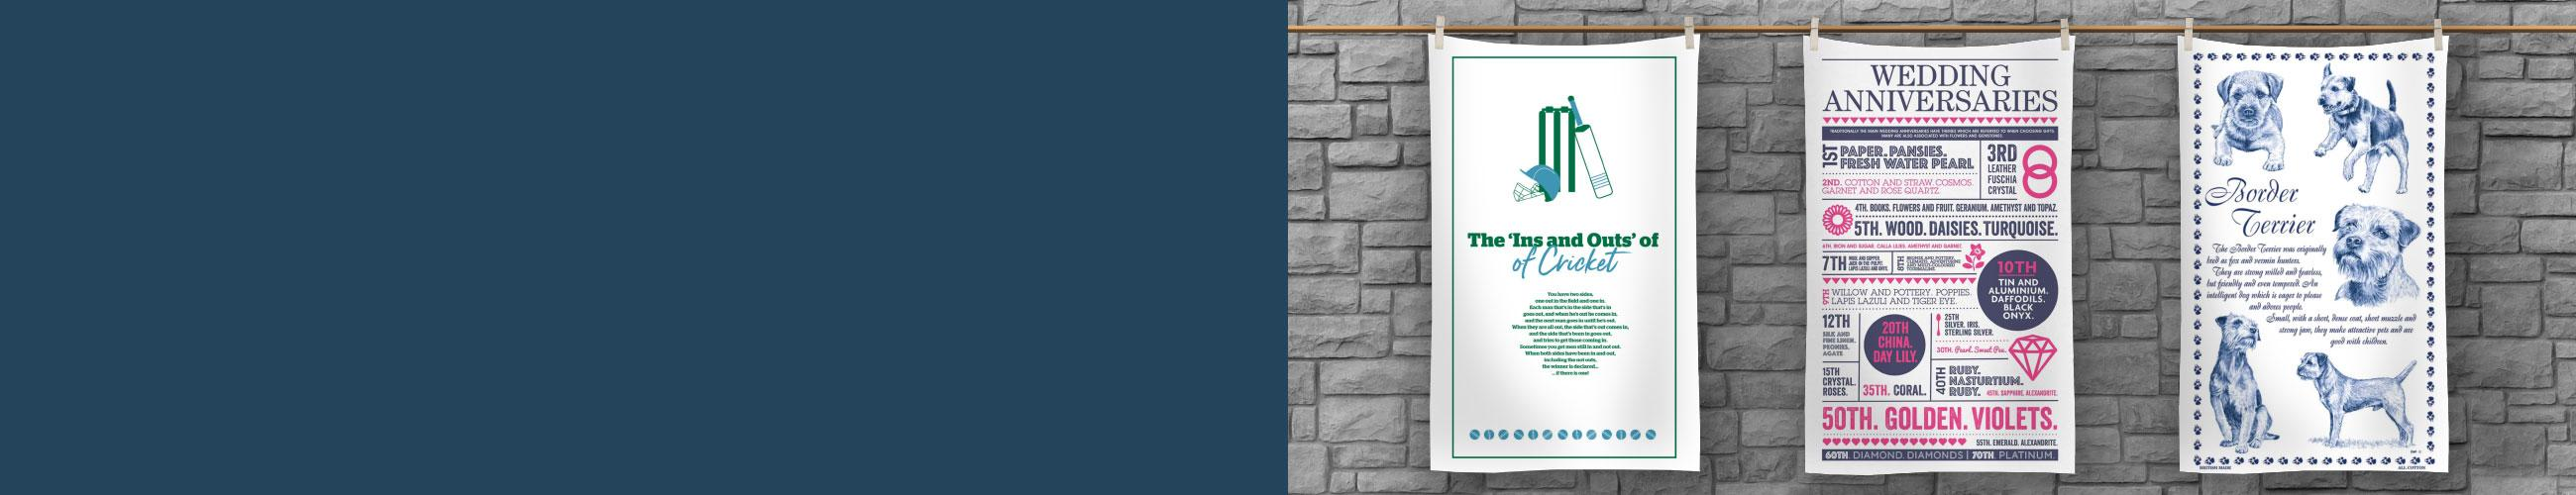 "<p style=""color: #FFF5D1;"">Themed Tea Towels</p>"